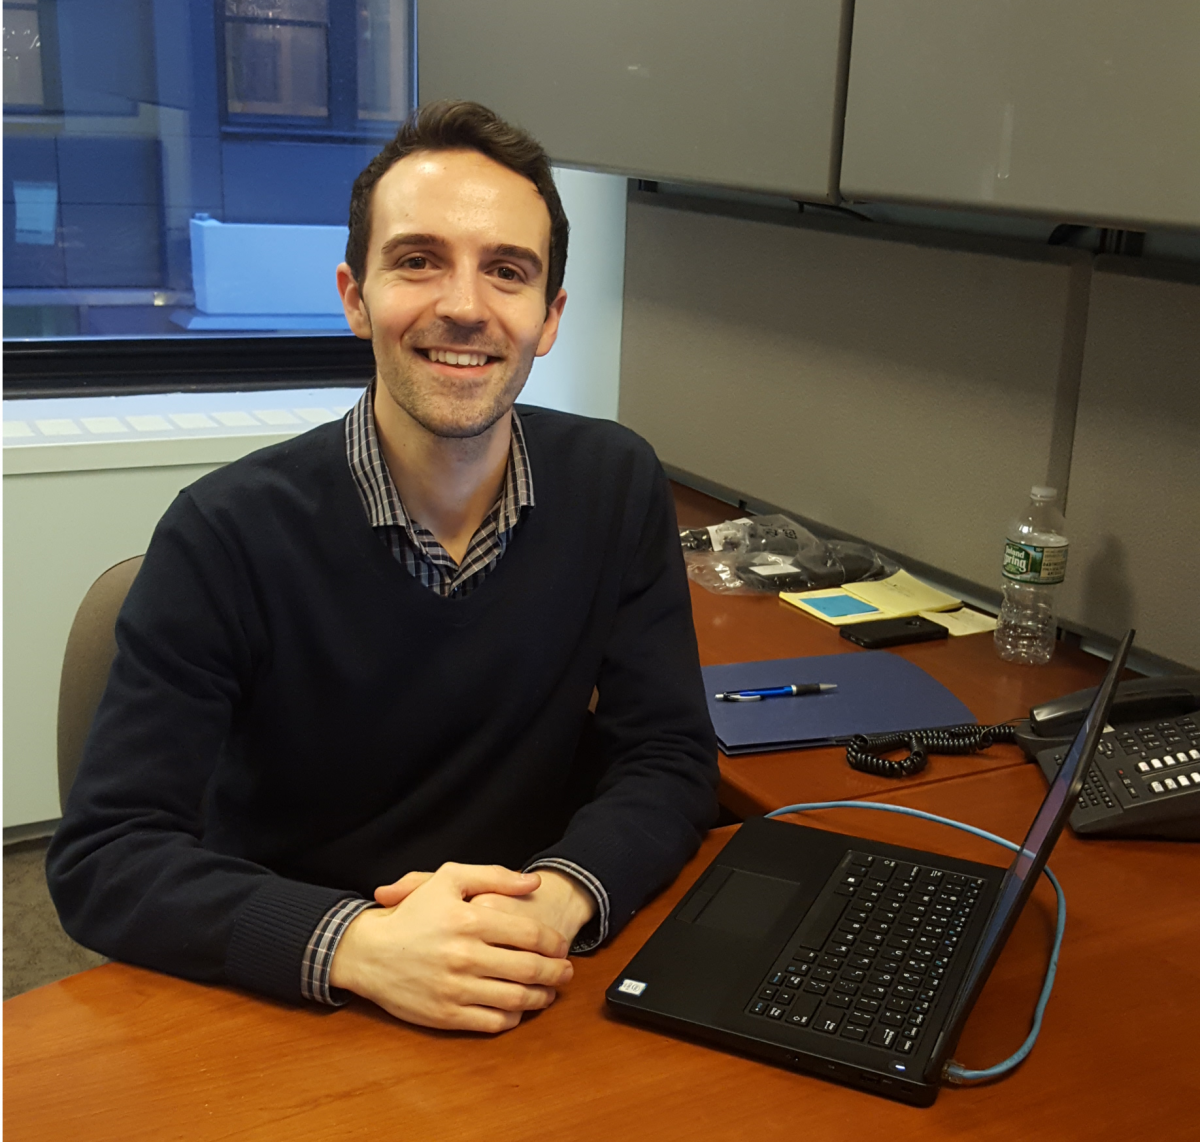 Meet Matt Brown, our new advisor in NYC!